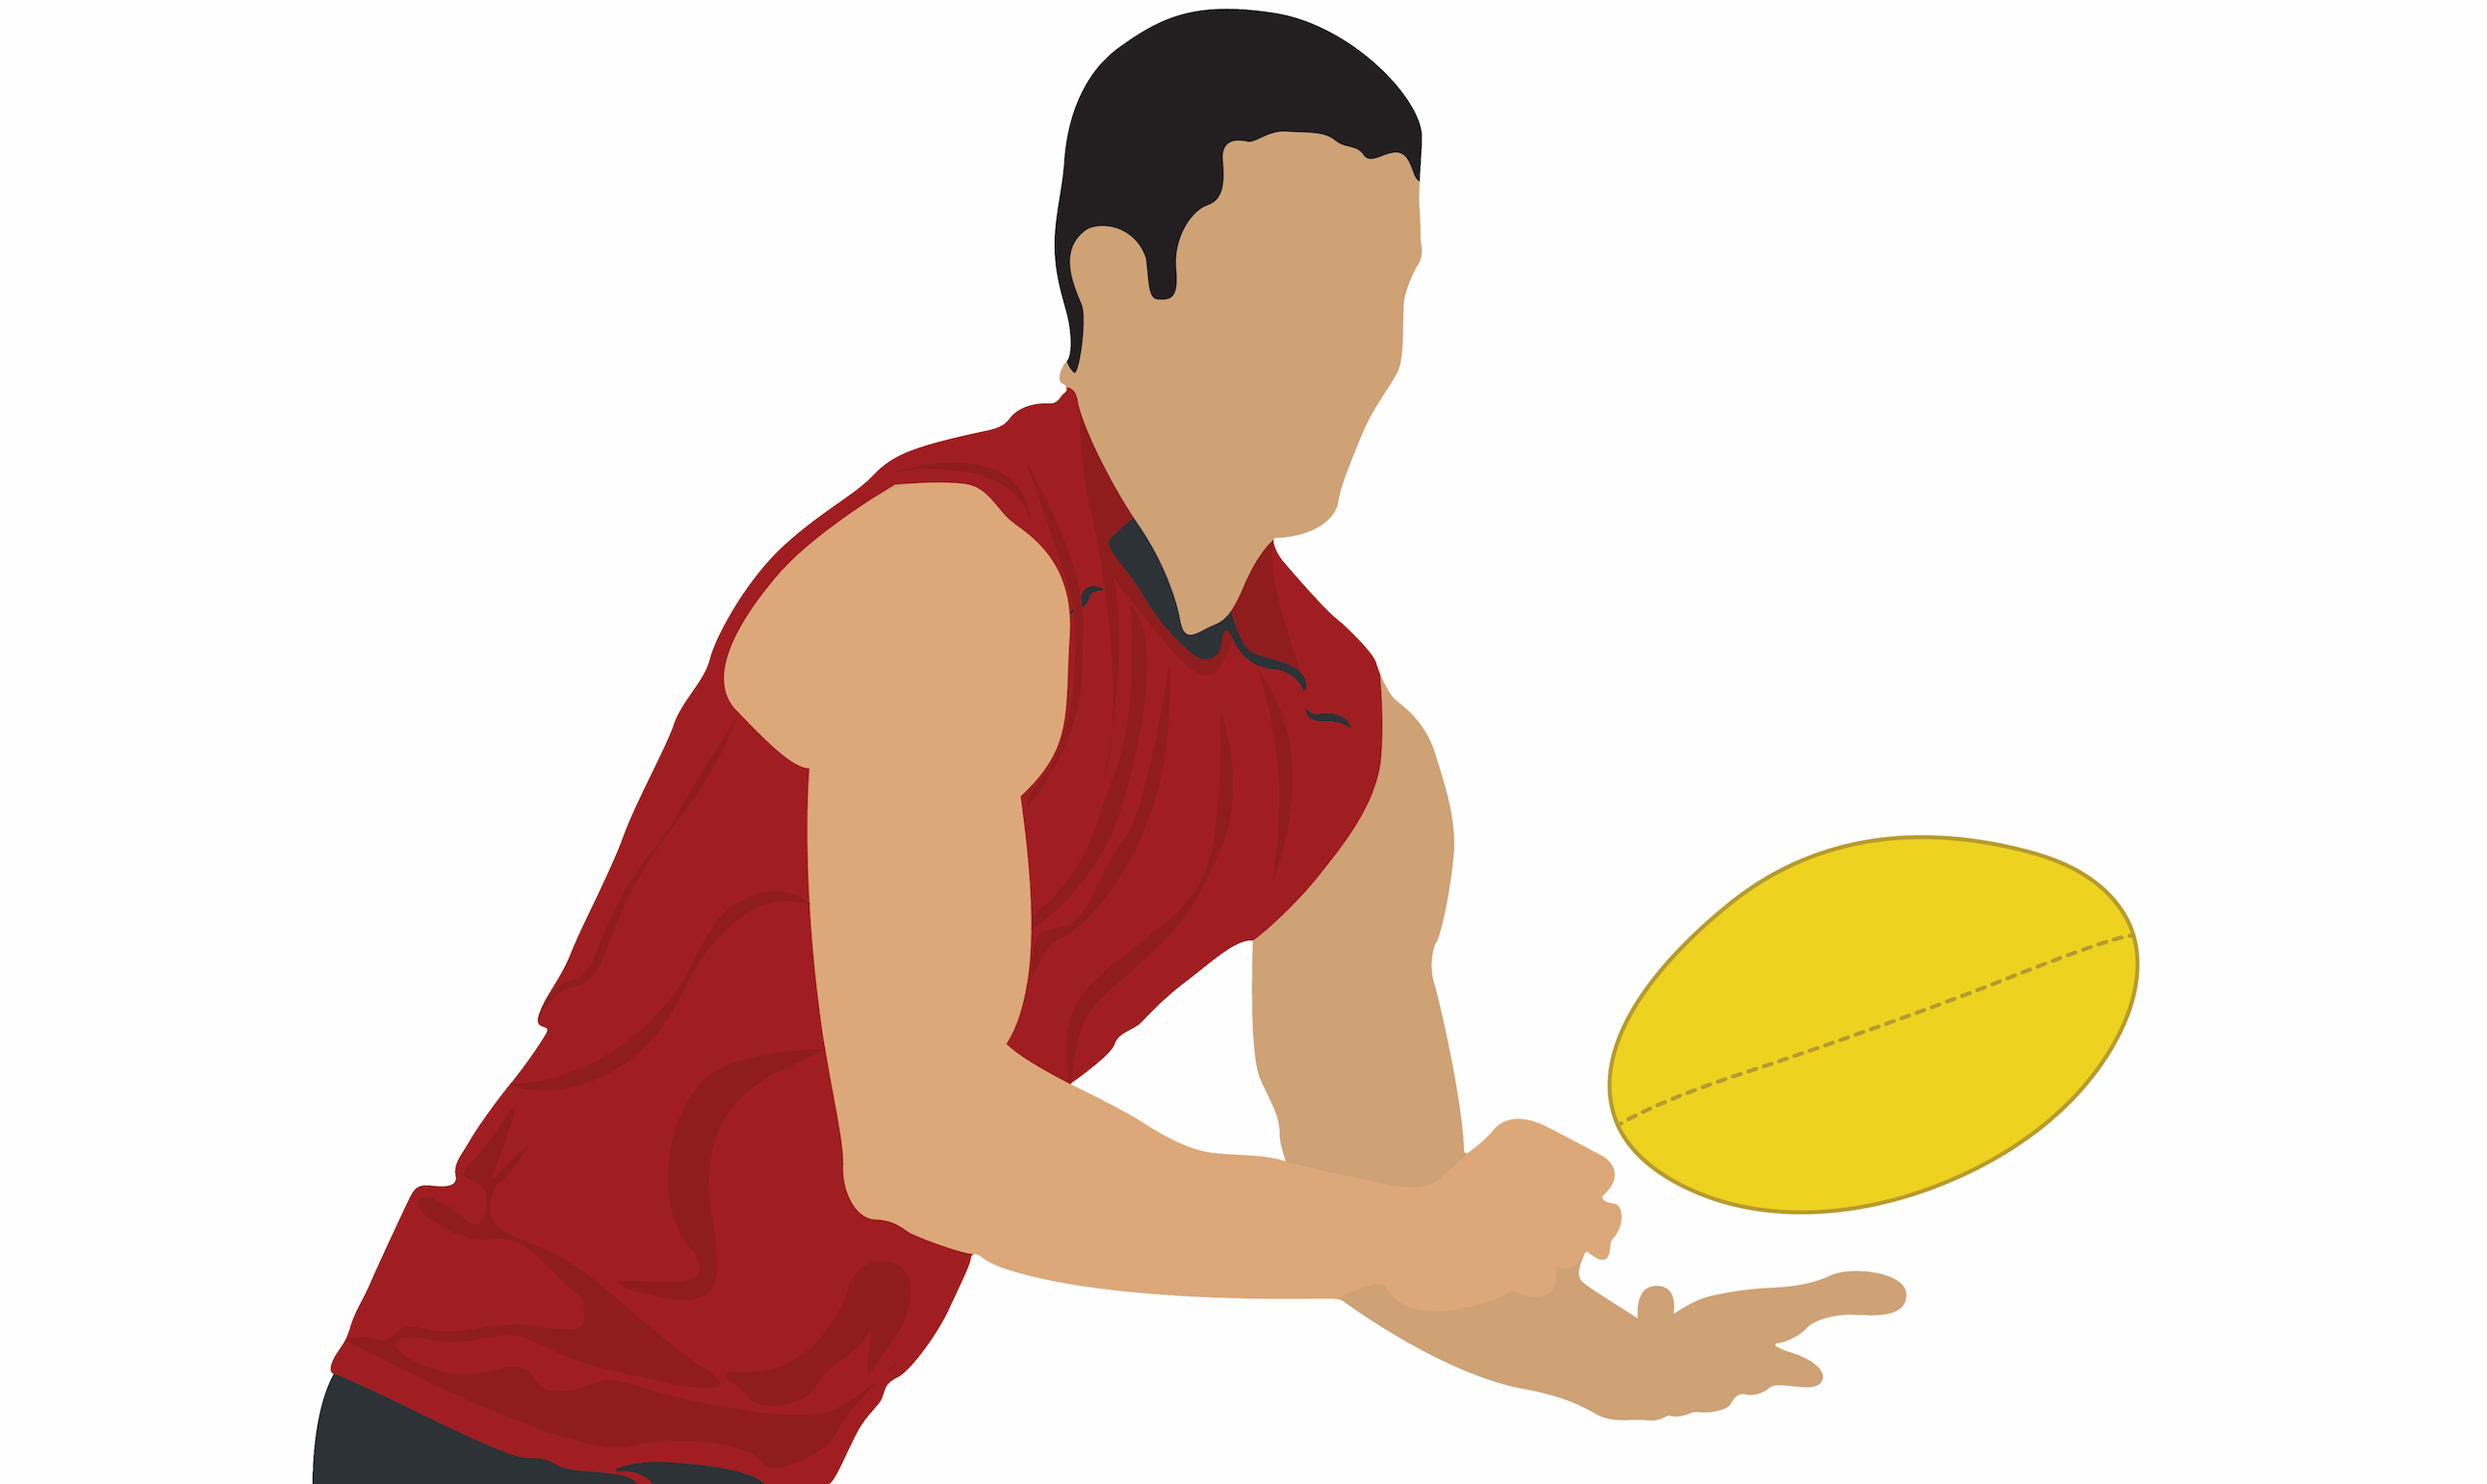 afl player